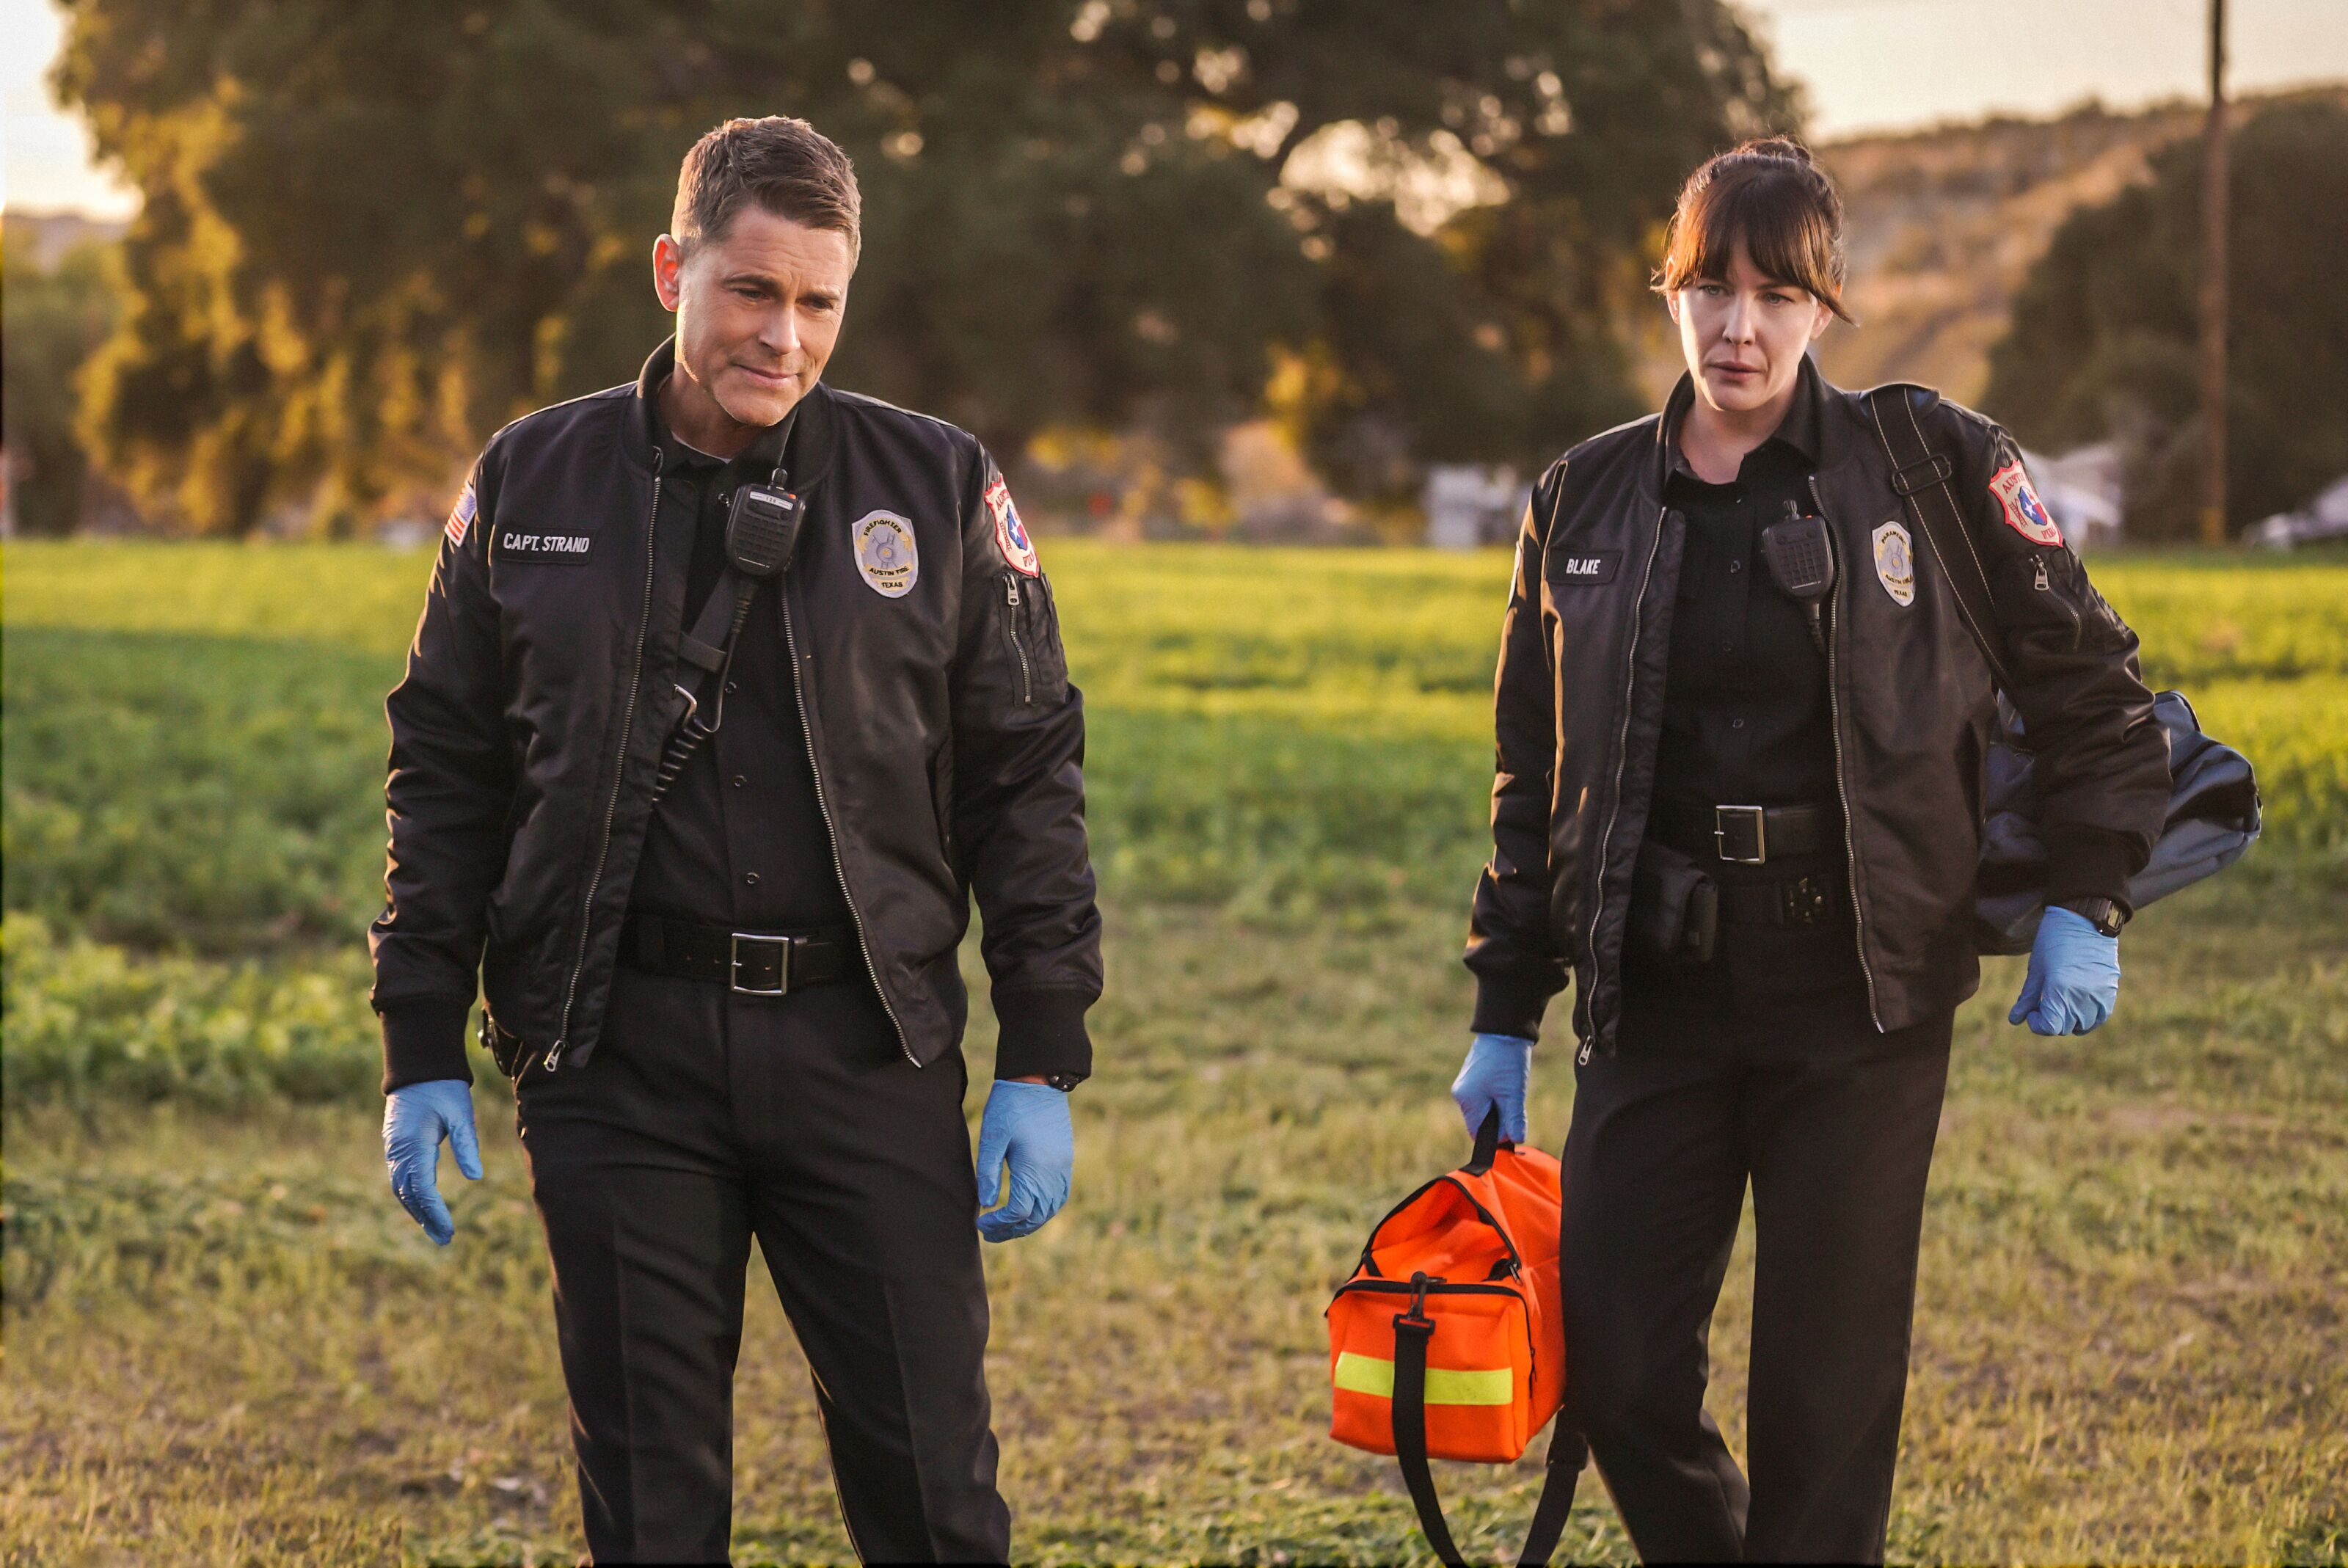 9-1-1: Lone Star: Has Owen just set himself up for failure?